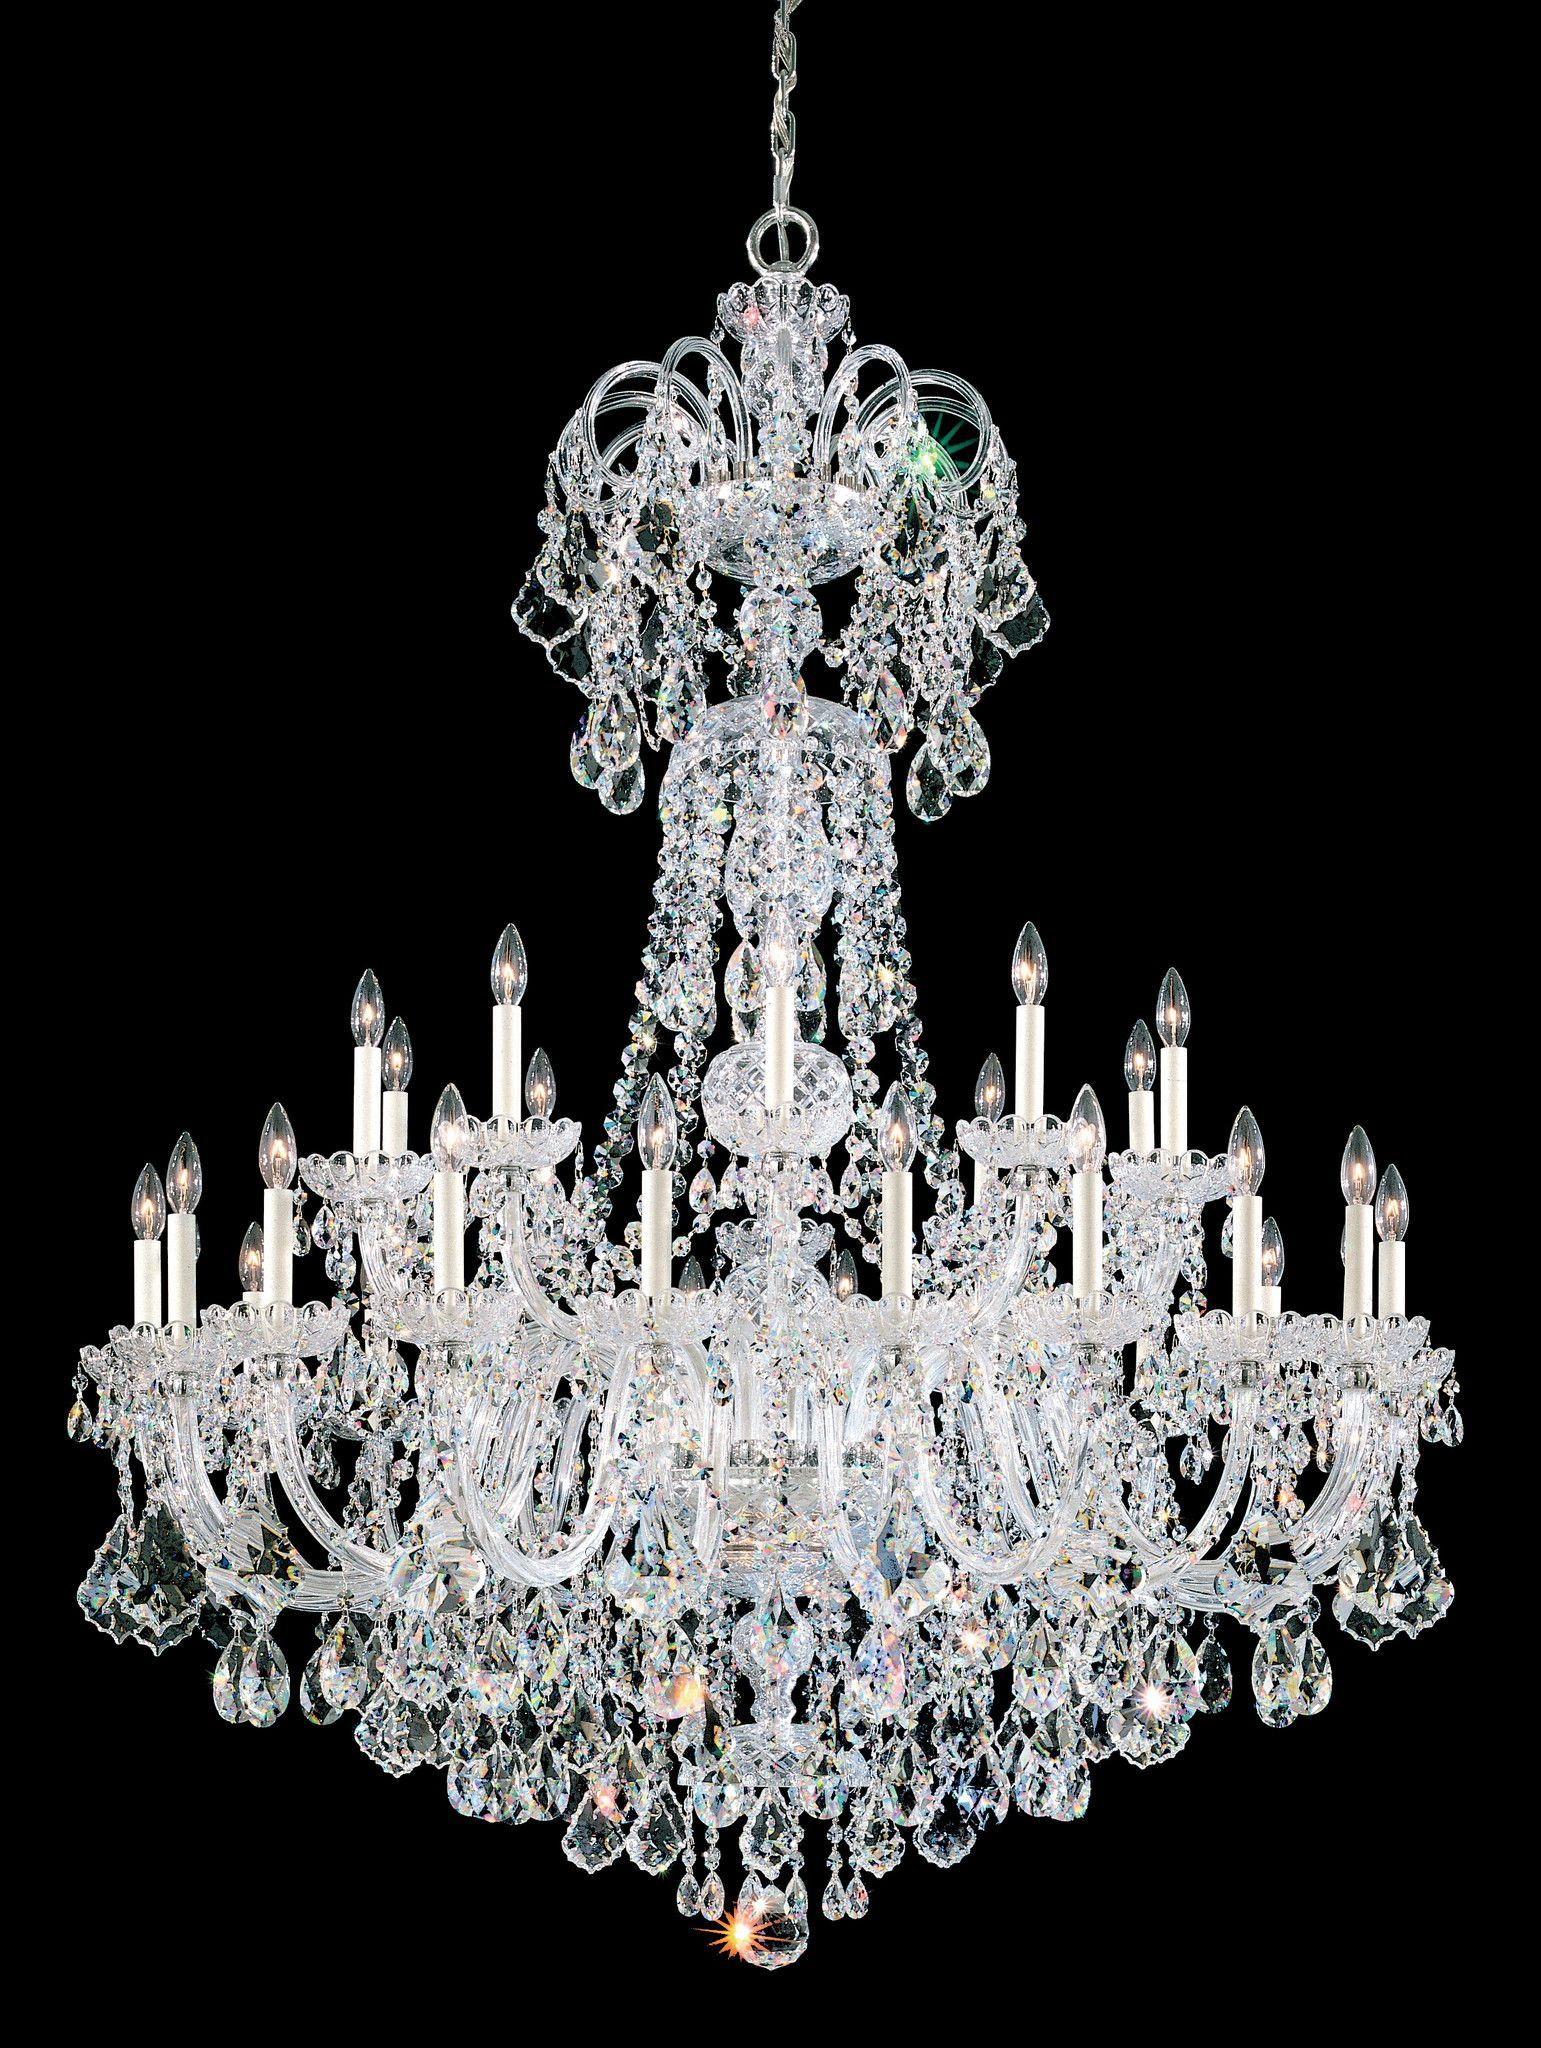 This Signature Classic By Arnold Schonbek Is An All-Crystal ...